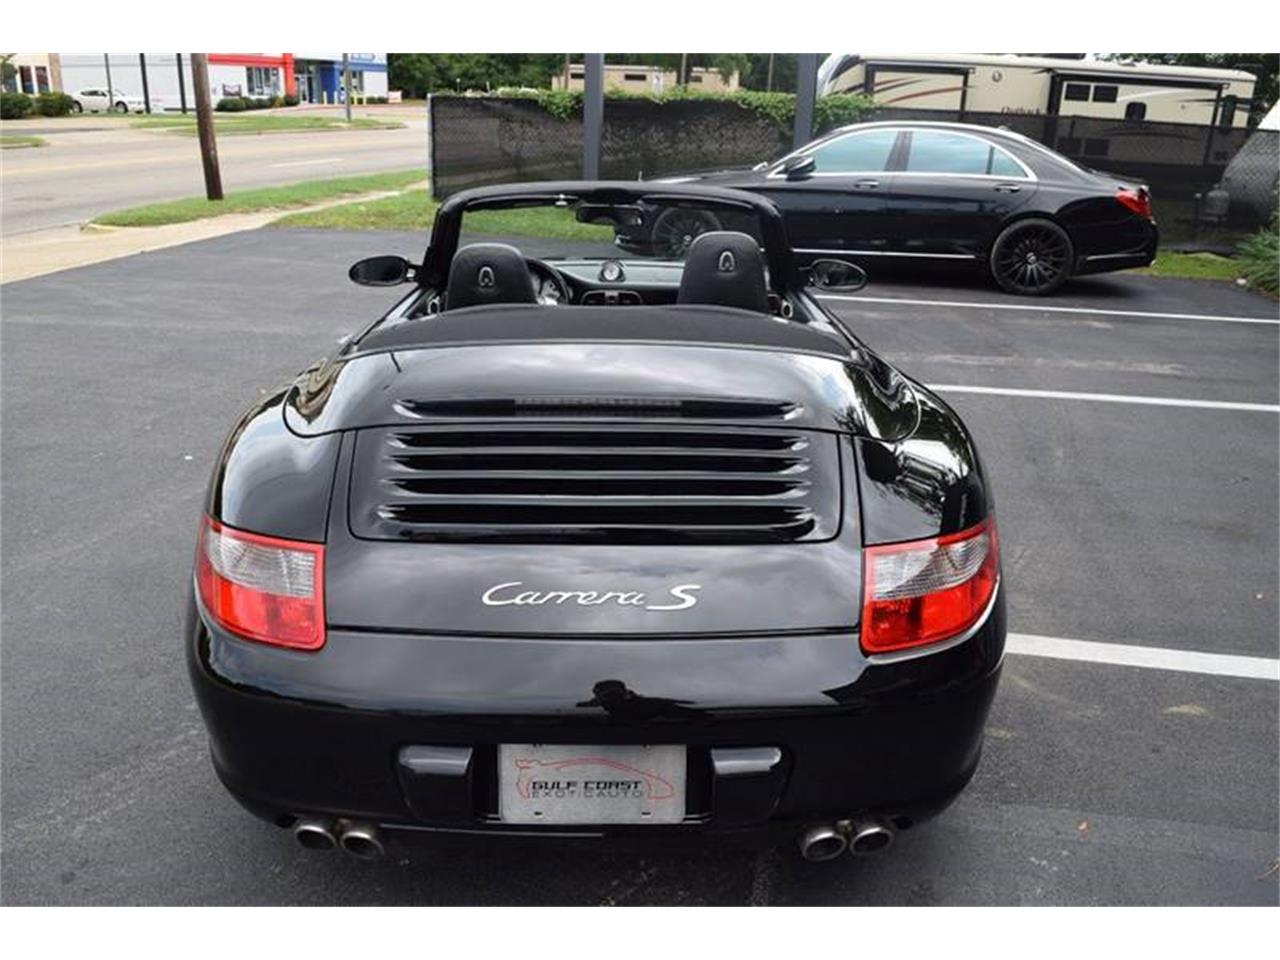 2006 Porsche 911 for sale in Biloxi, MS – photo 43